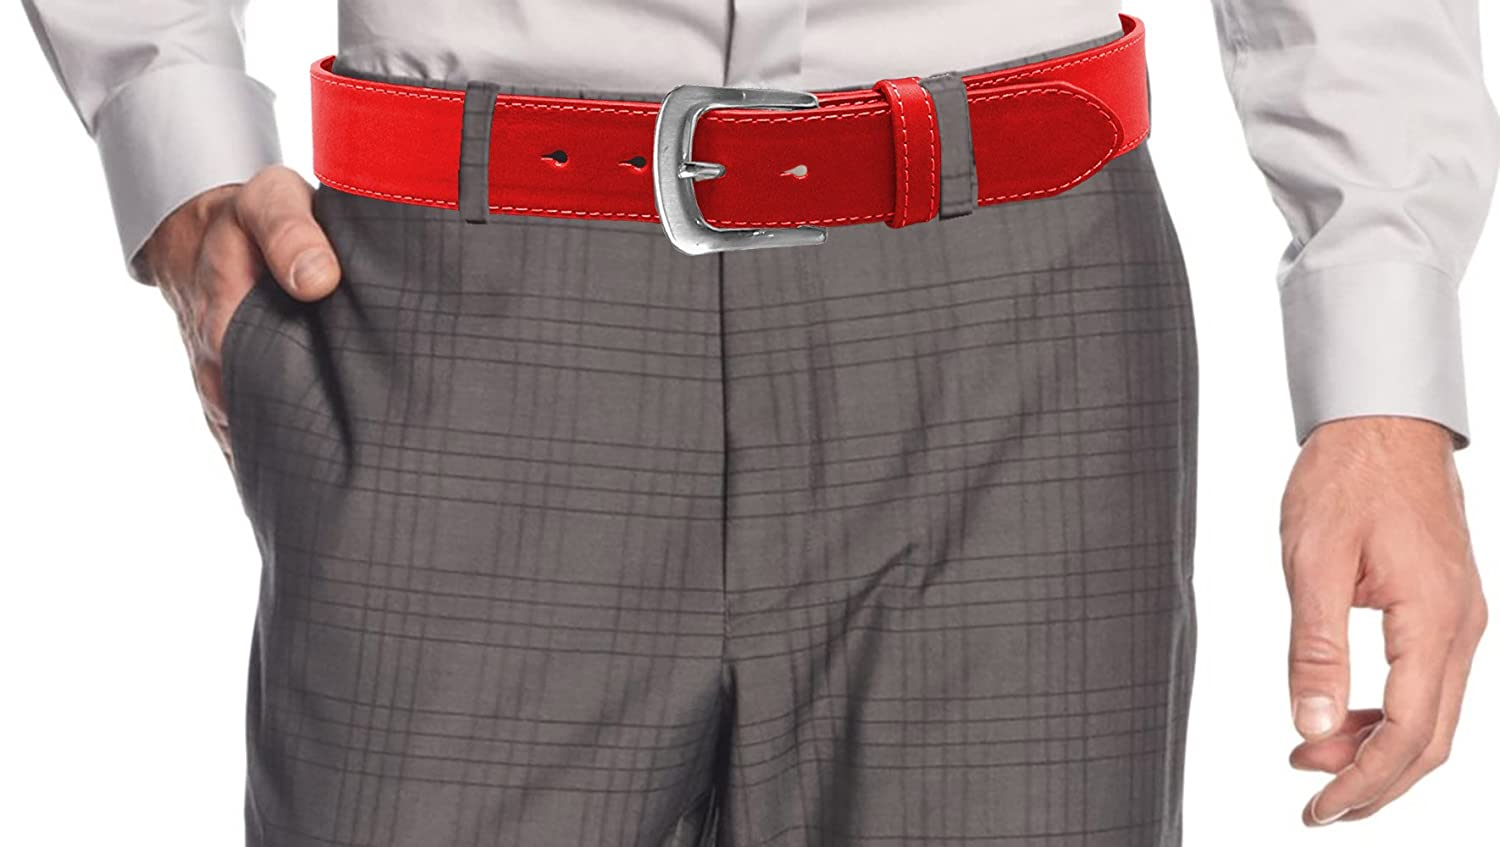 LUNA Mens Premium Quality Dress Stitch Buckle Belt - Red - X Large